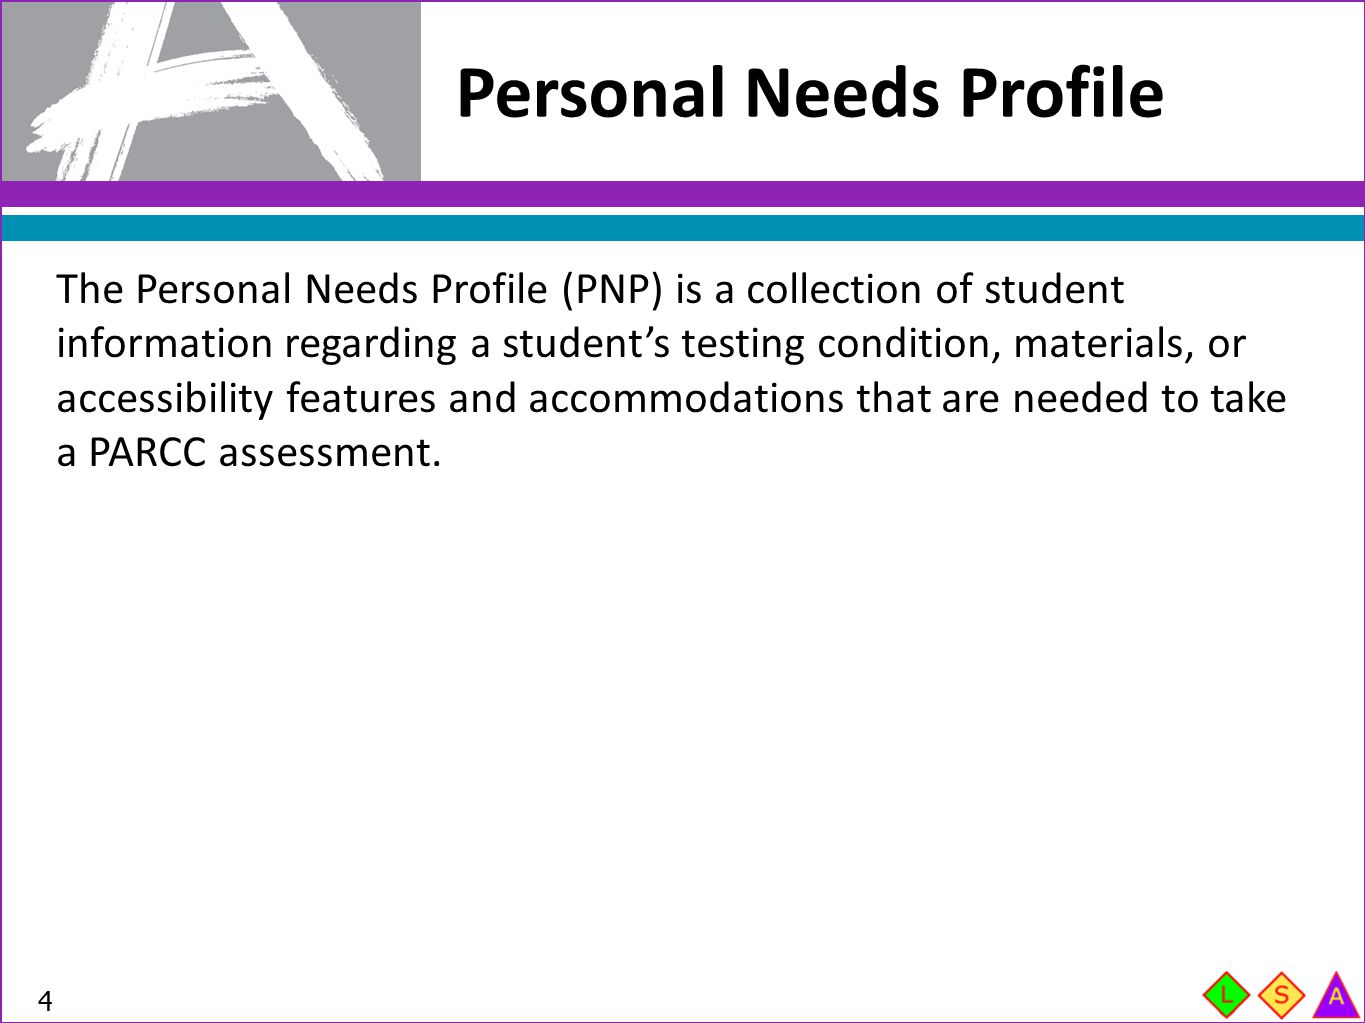 Personal Needs Profile